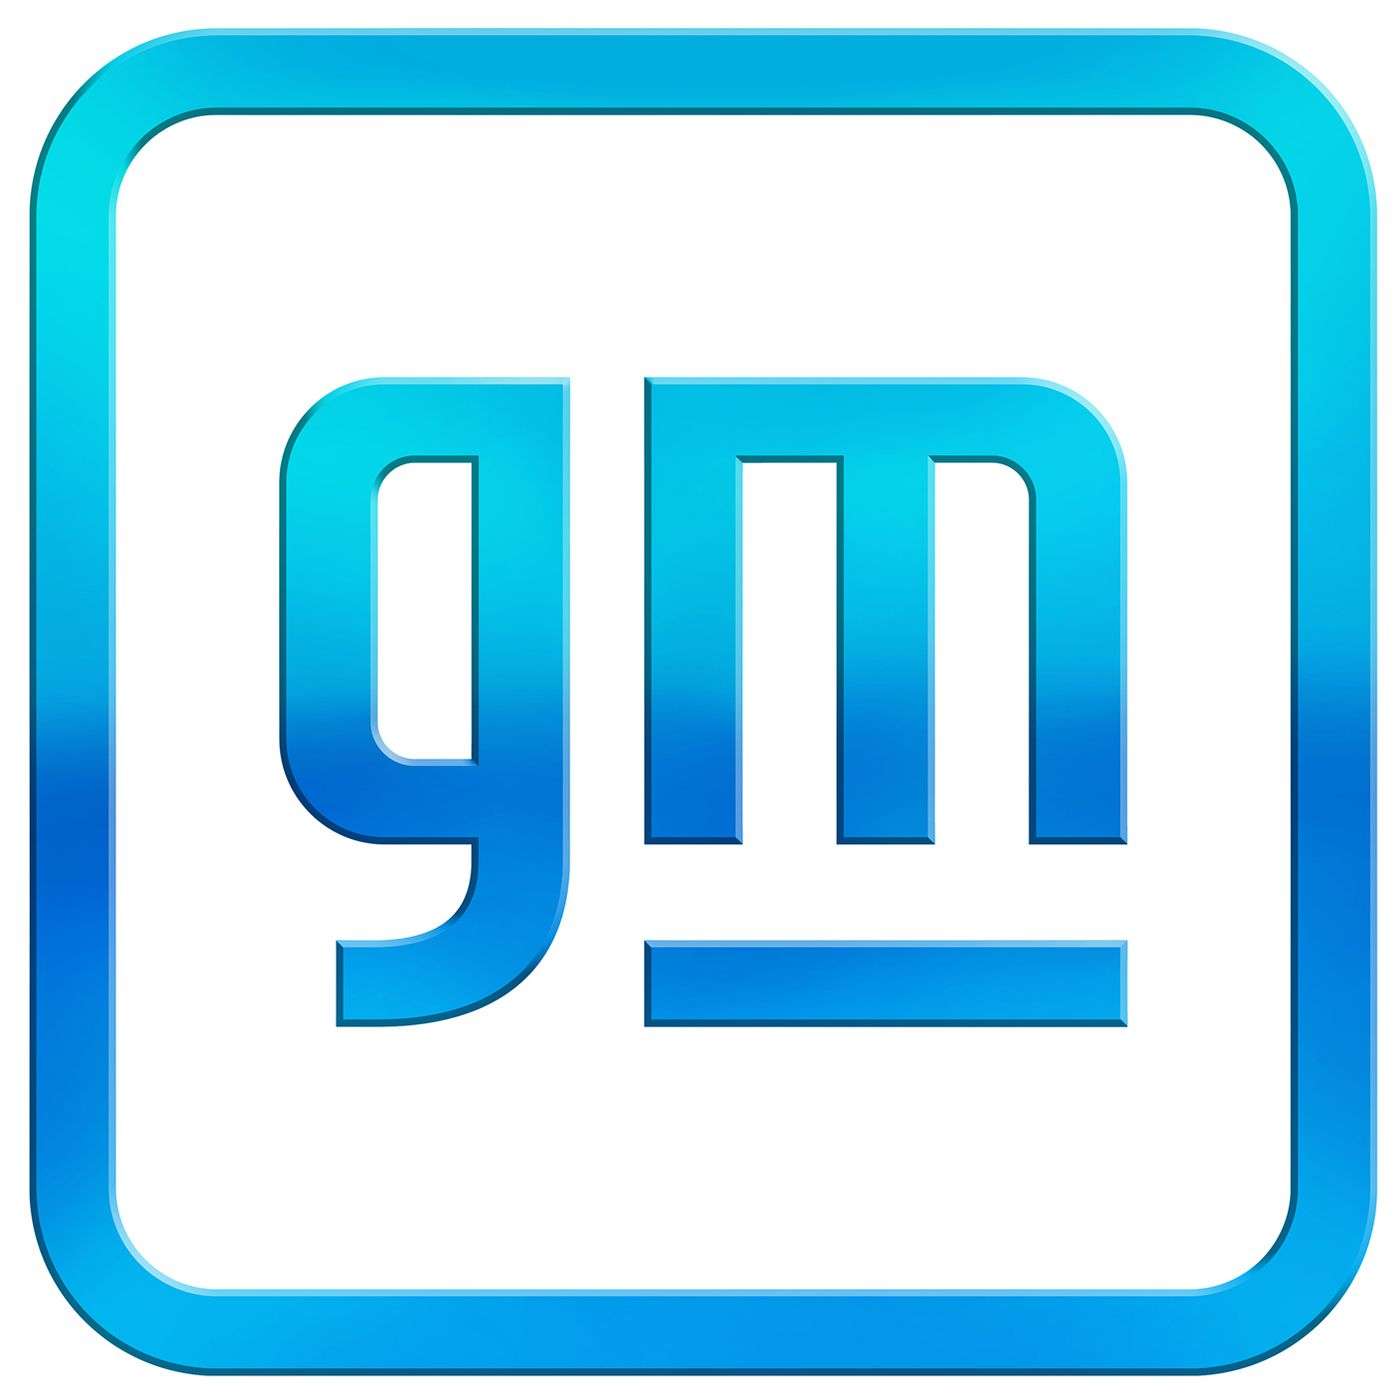 Gm Unveils New Logo To Emphasize Its Pivot To Electric Vehicles The Verge